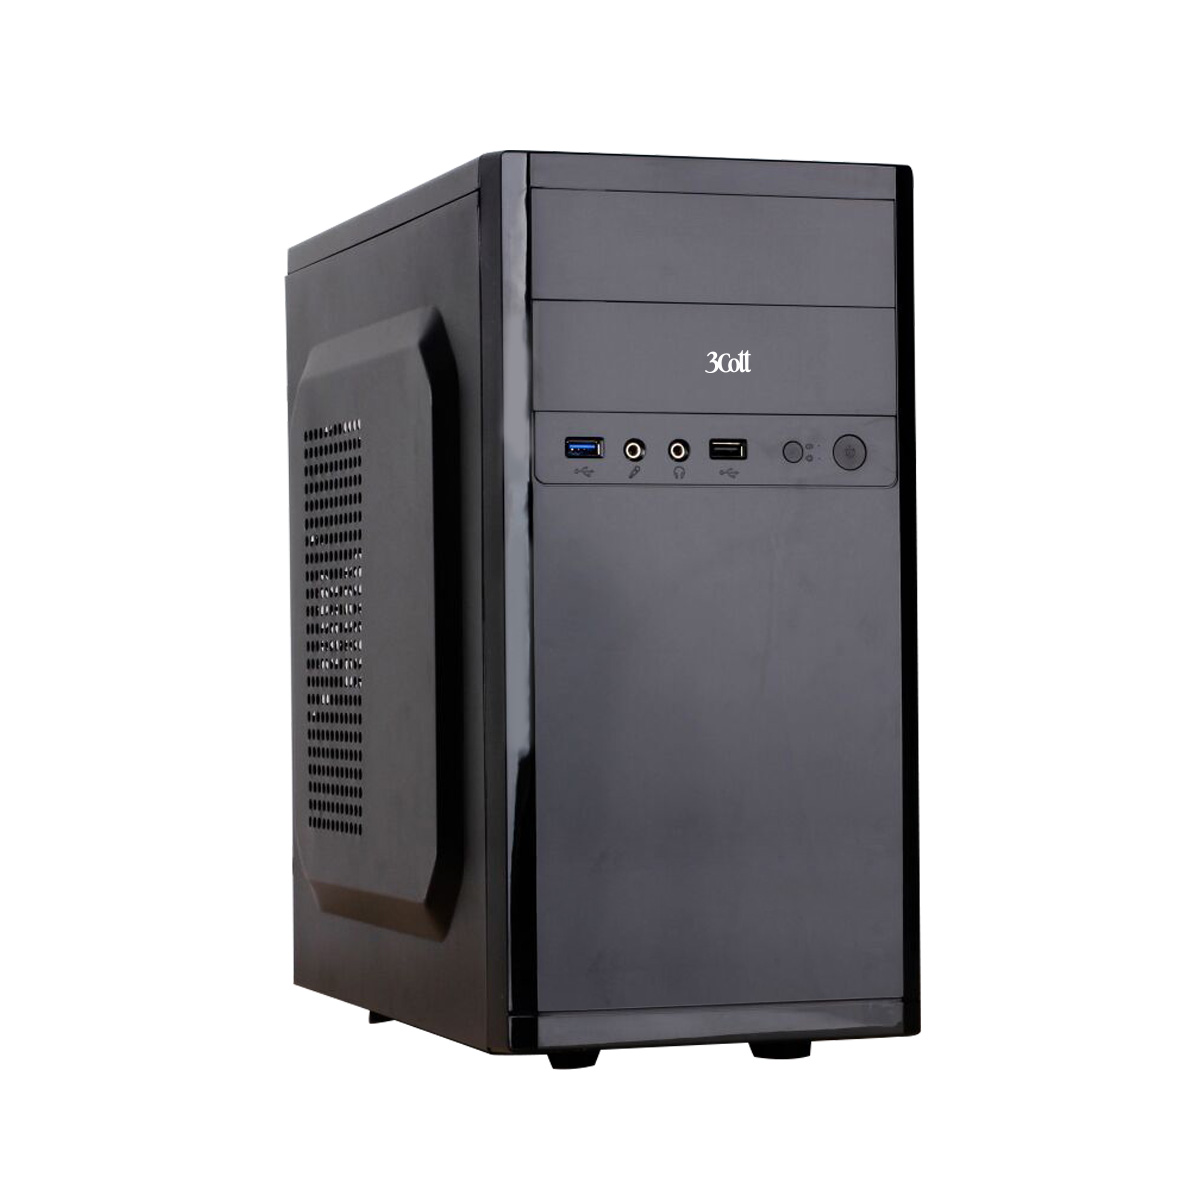 Компьютер Office 130 R (2018) >INTEL PENTIUM G4400, 4096 Mb, INTEL HD GRAPH. 510, 1000 HDD, NO DVD, NO OS fuzzy multilevel graph embedding